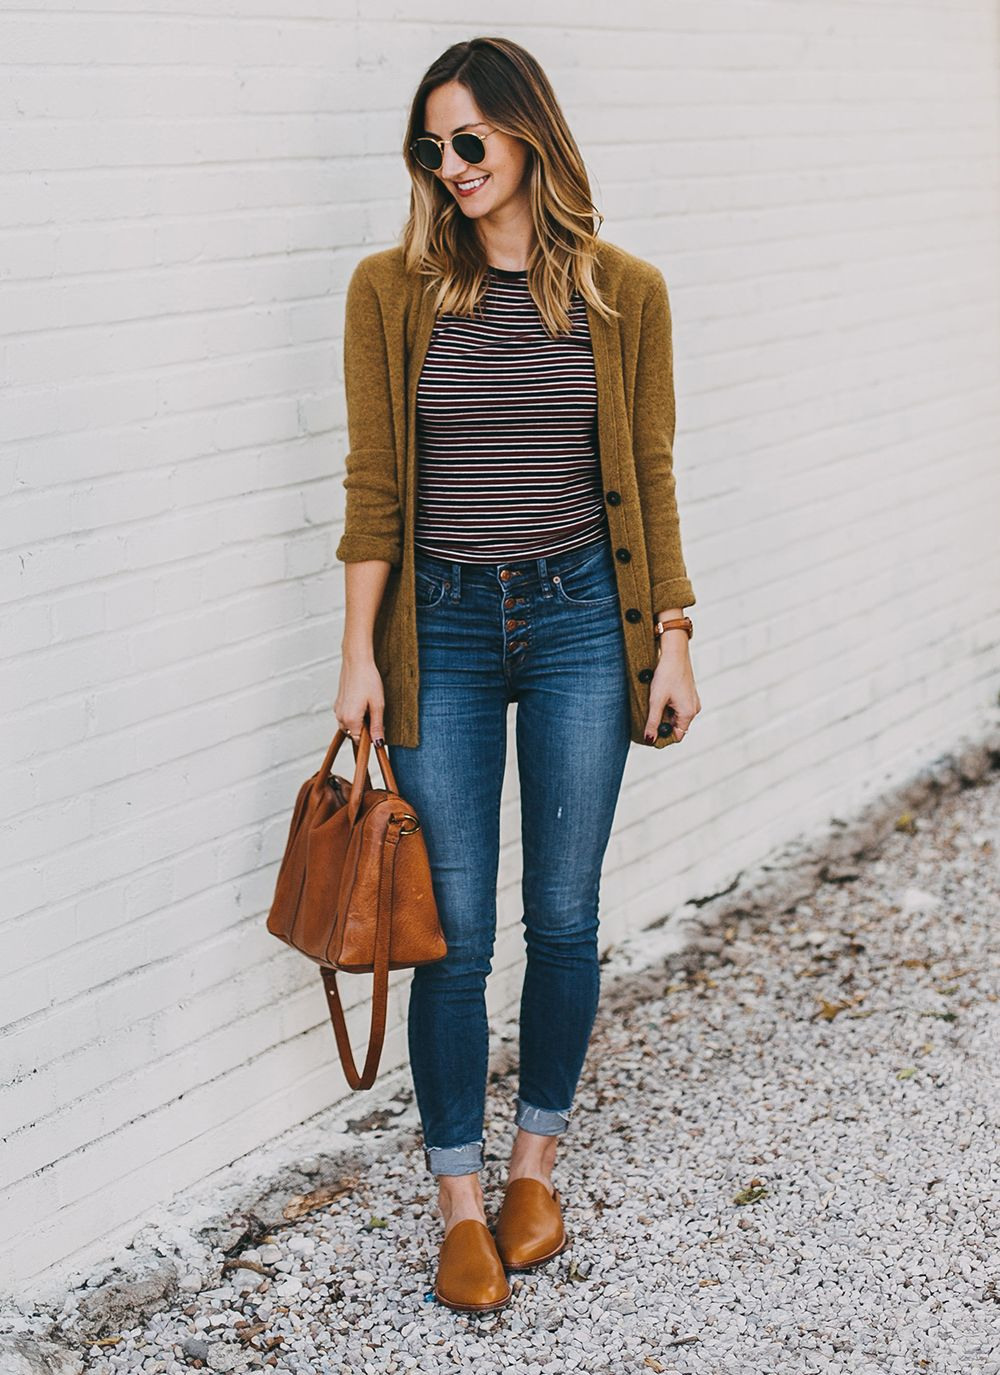 abe03b90491e livvyland-blog-olivia-watson-austin-texas-fashion-lifestyle-blogger-madewell-grandpa-cardigan-button-up-high-rise-skinny-jeans-tan-leather-slides-fall-  ...